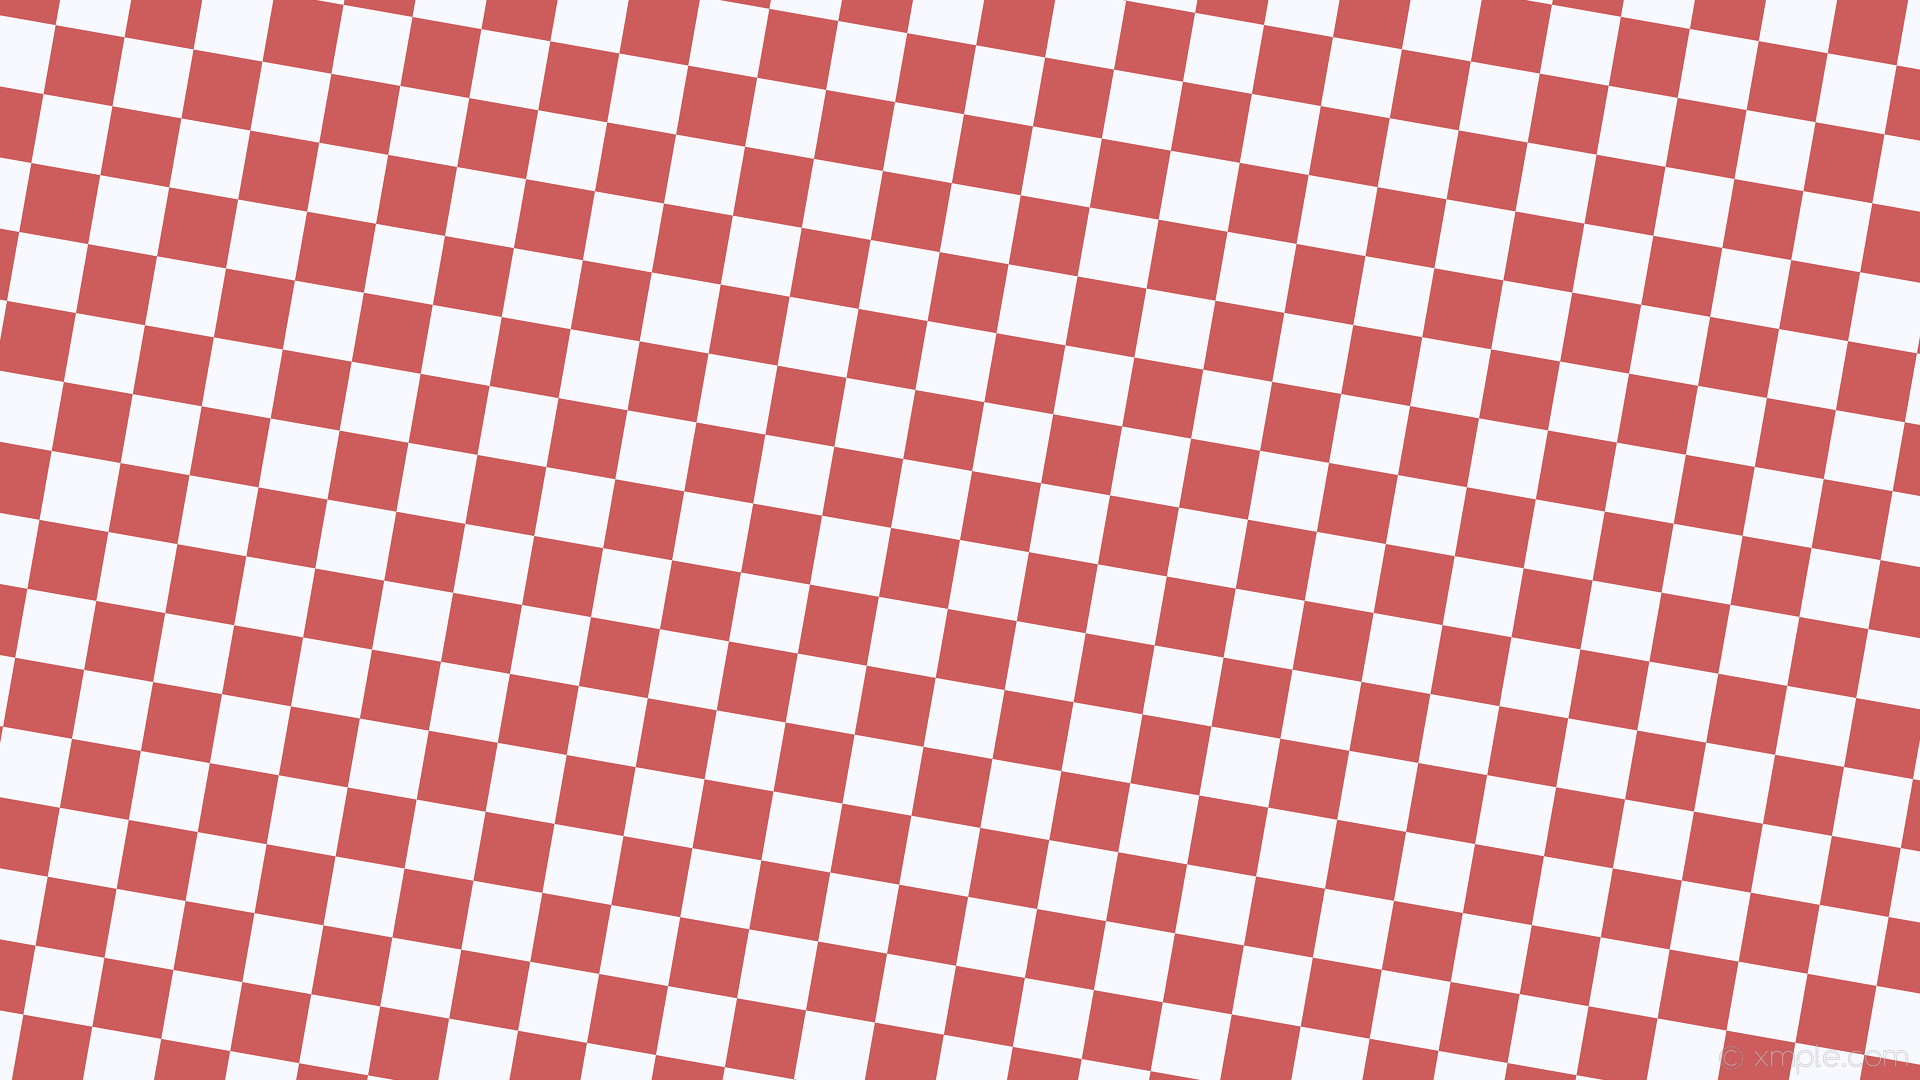 1920x1080 wallpaper squares white red checkered indian red ghost white #cd5c5c  #f8f8ff diagonal 80°